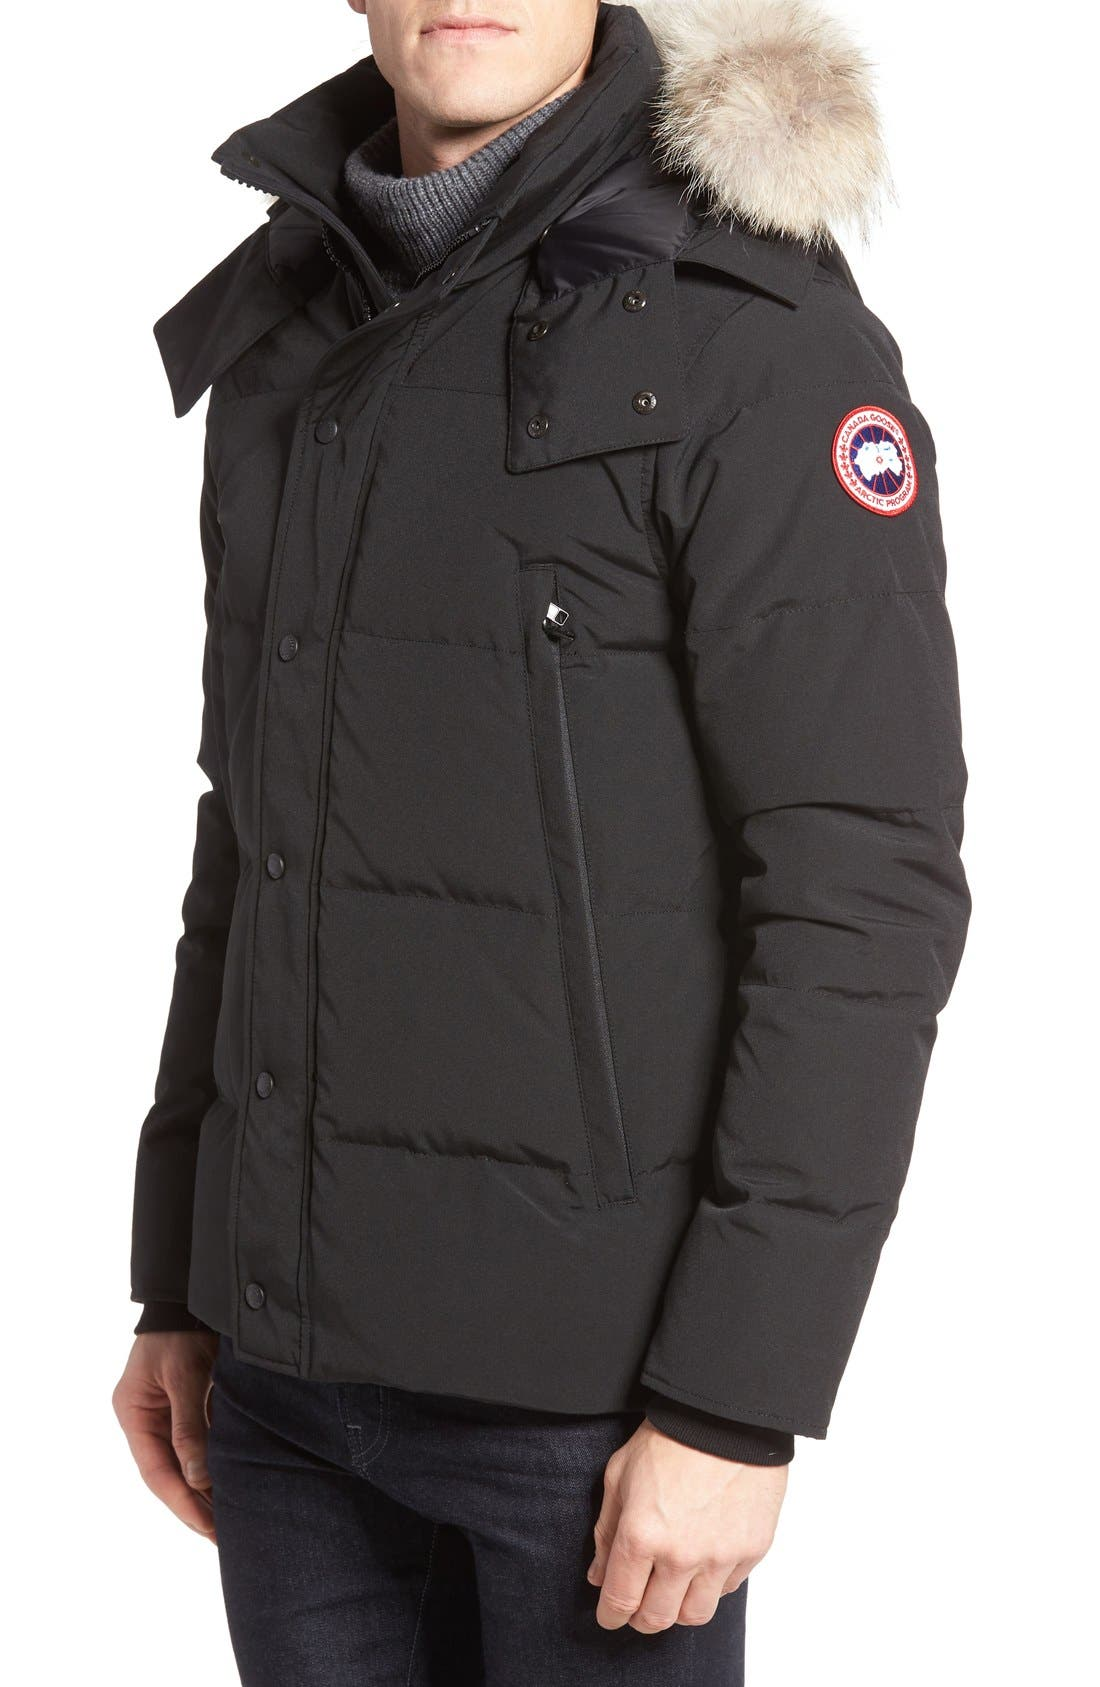 Goose down canadian jackets